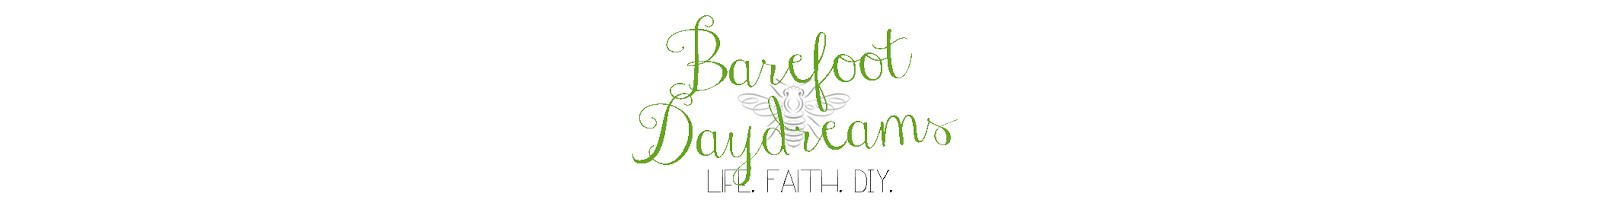 Barefoot Daydreams